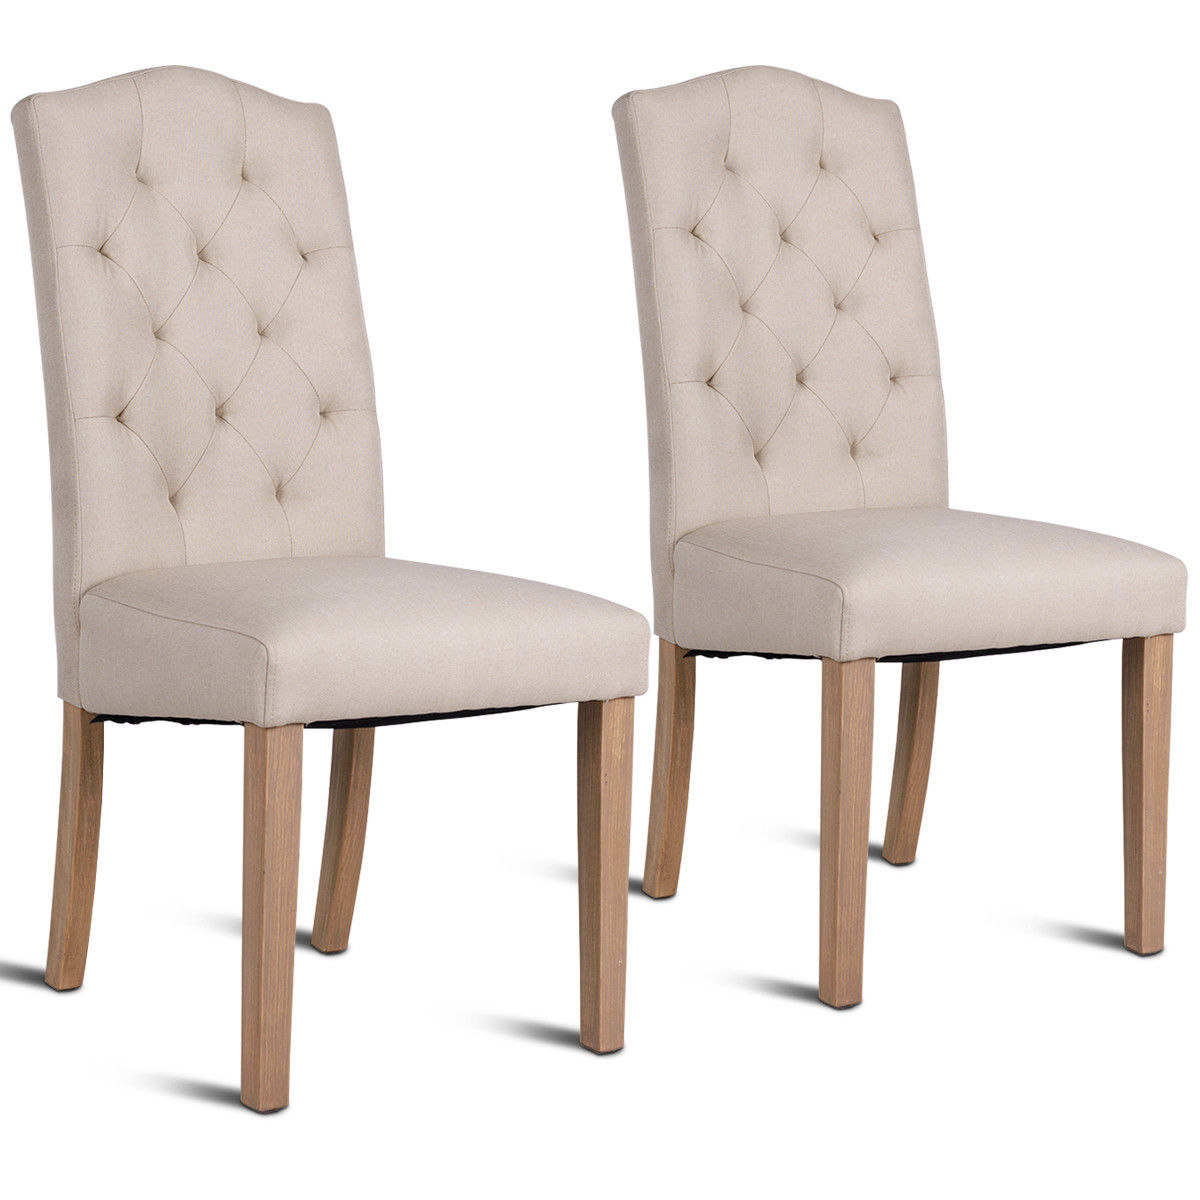 Dining Room Chairs Fabric: Costway Set Of 2 Dining Chair Fabric Upholstered With